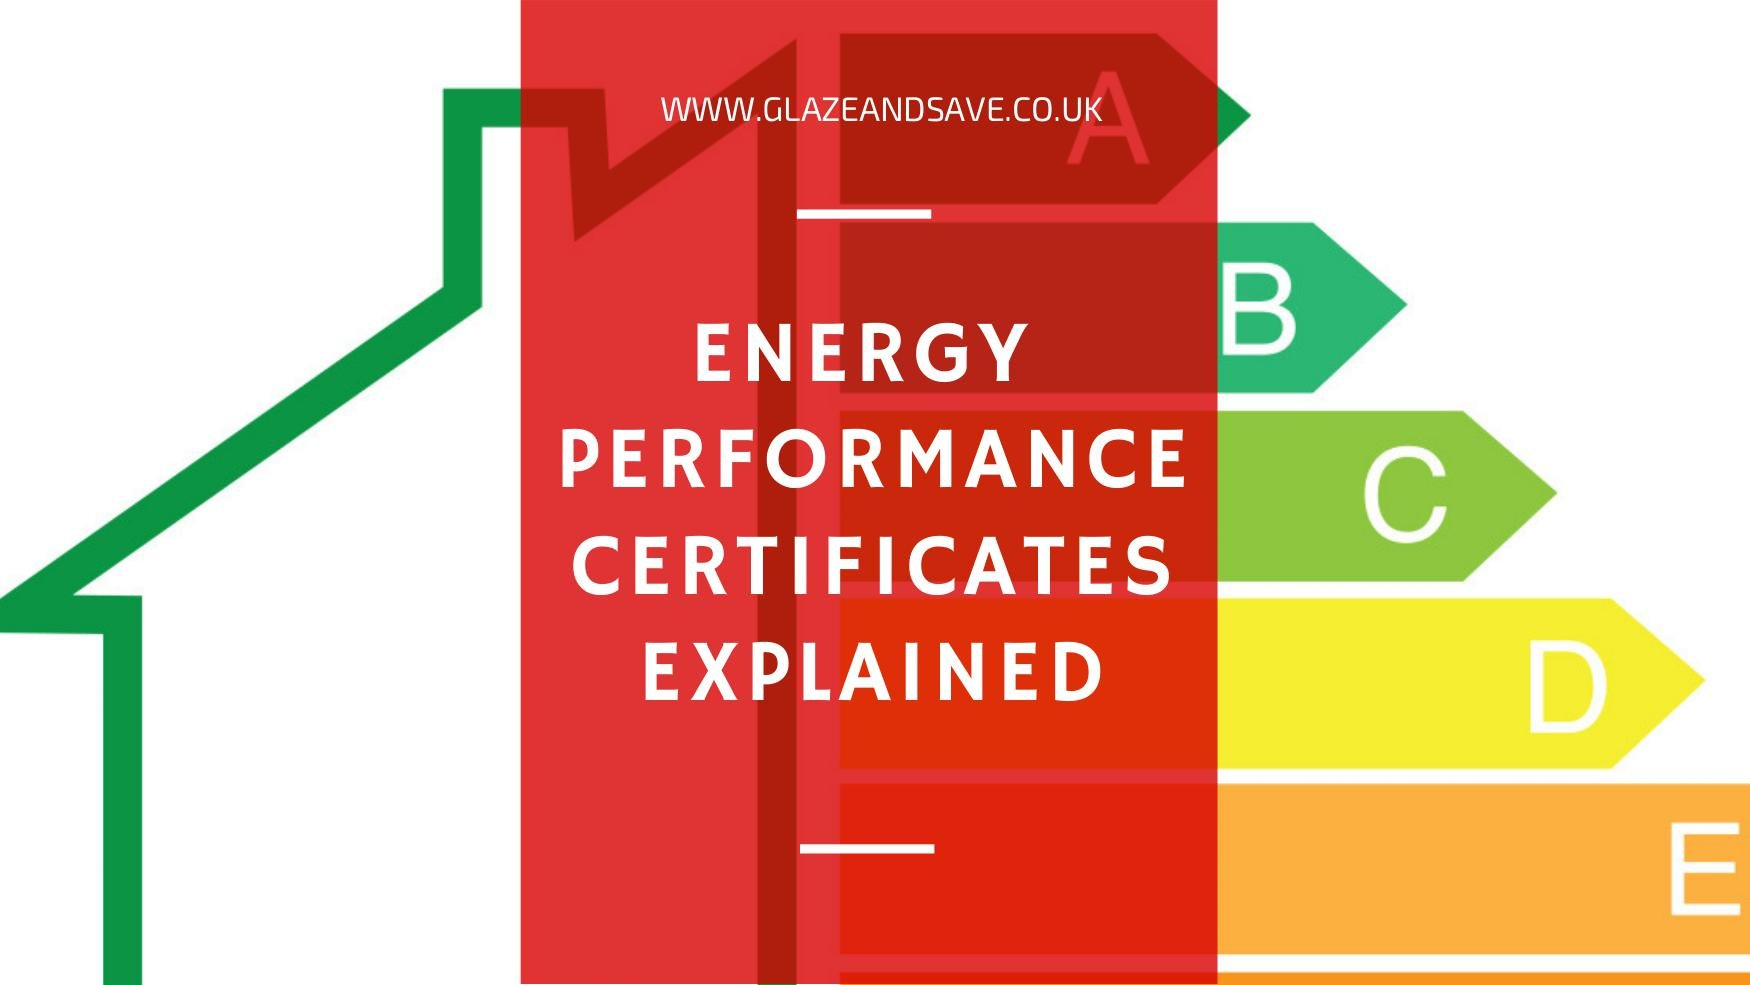 Energy Performance Certificates EPC explained by Glaze and Save magnetic secondary glazing and draughtproofing specialists based in perth scotland.